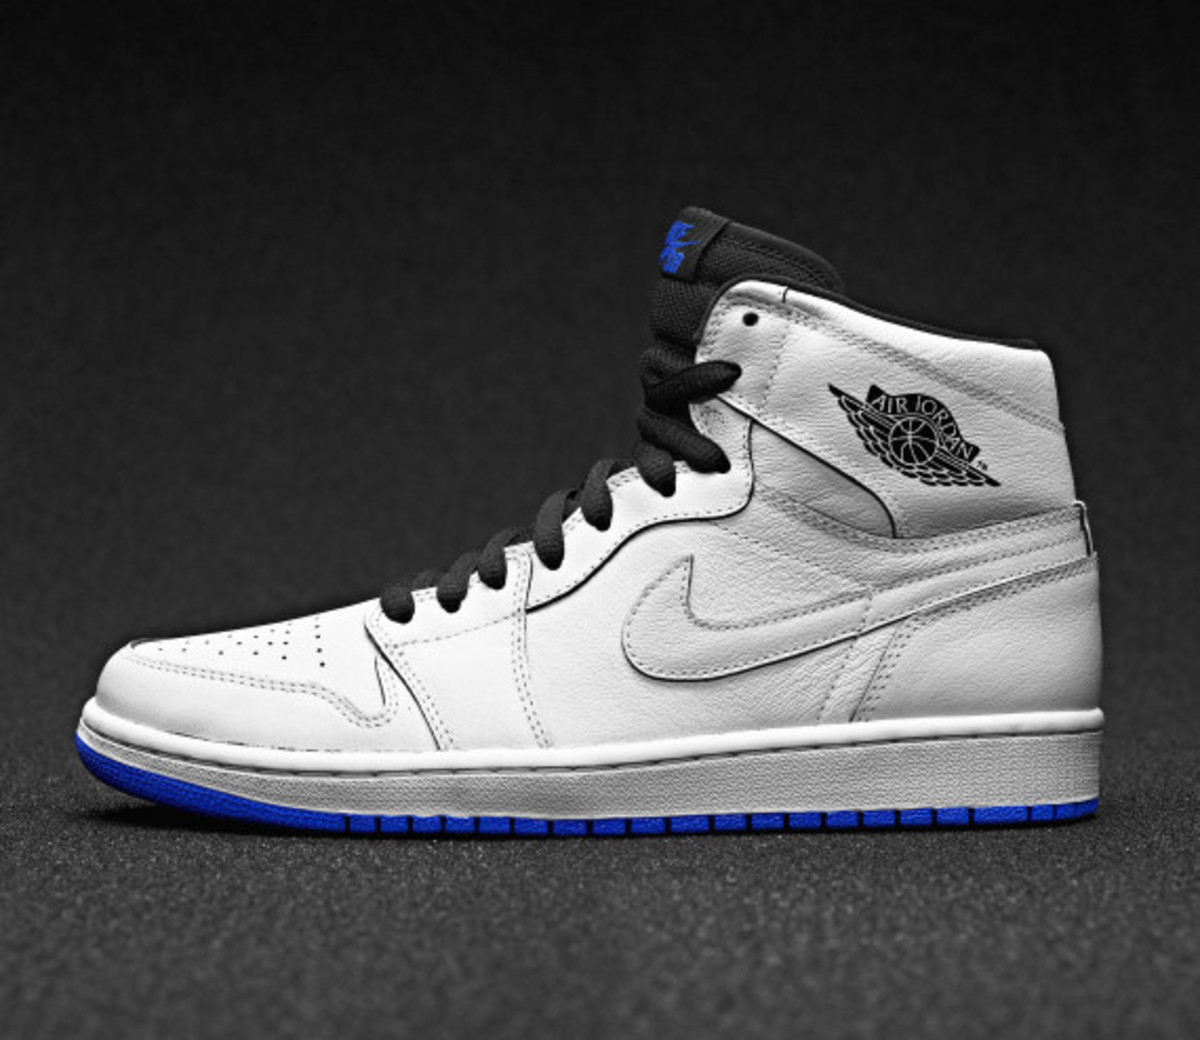 Nike SB x Air Jordan 1 by Lance Mountain - Officially Unveiled - 7